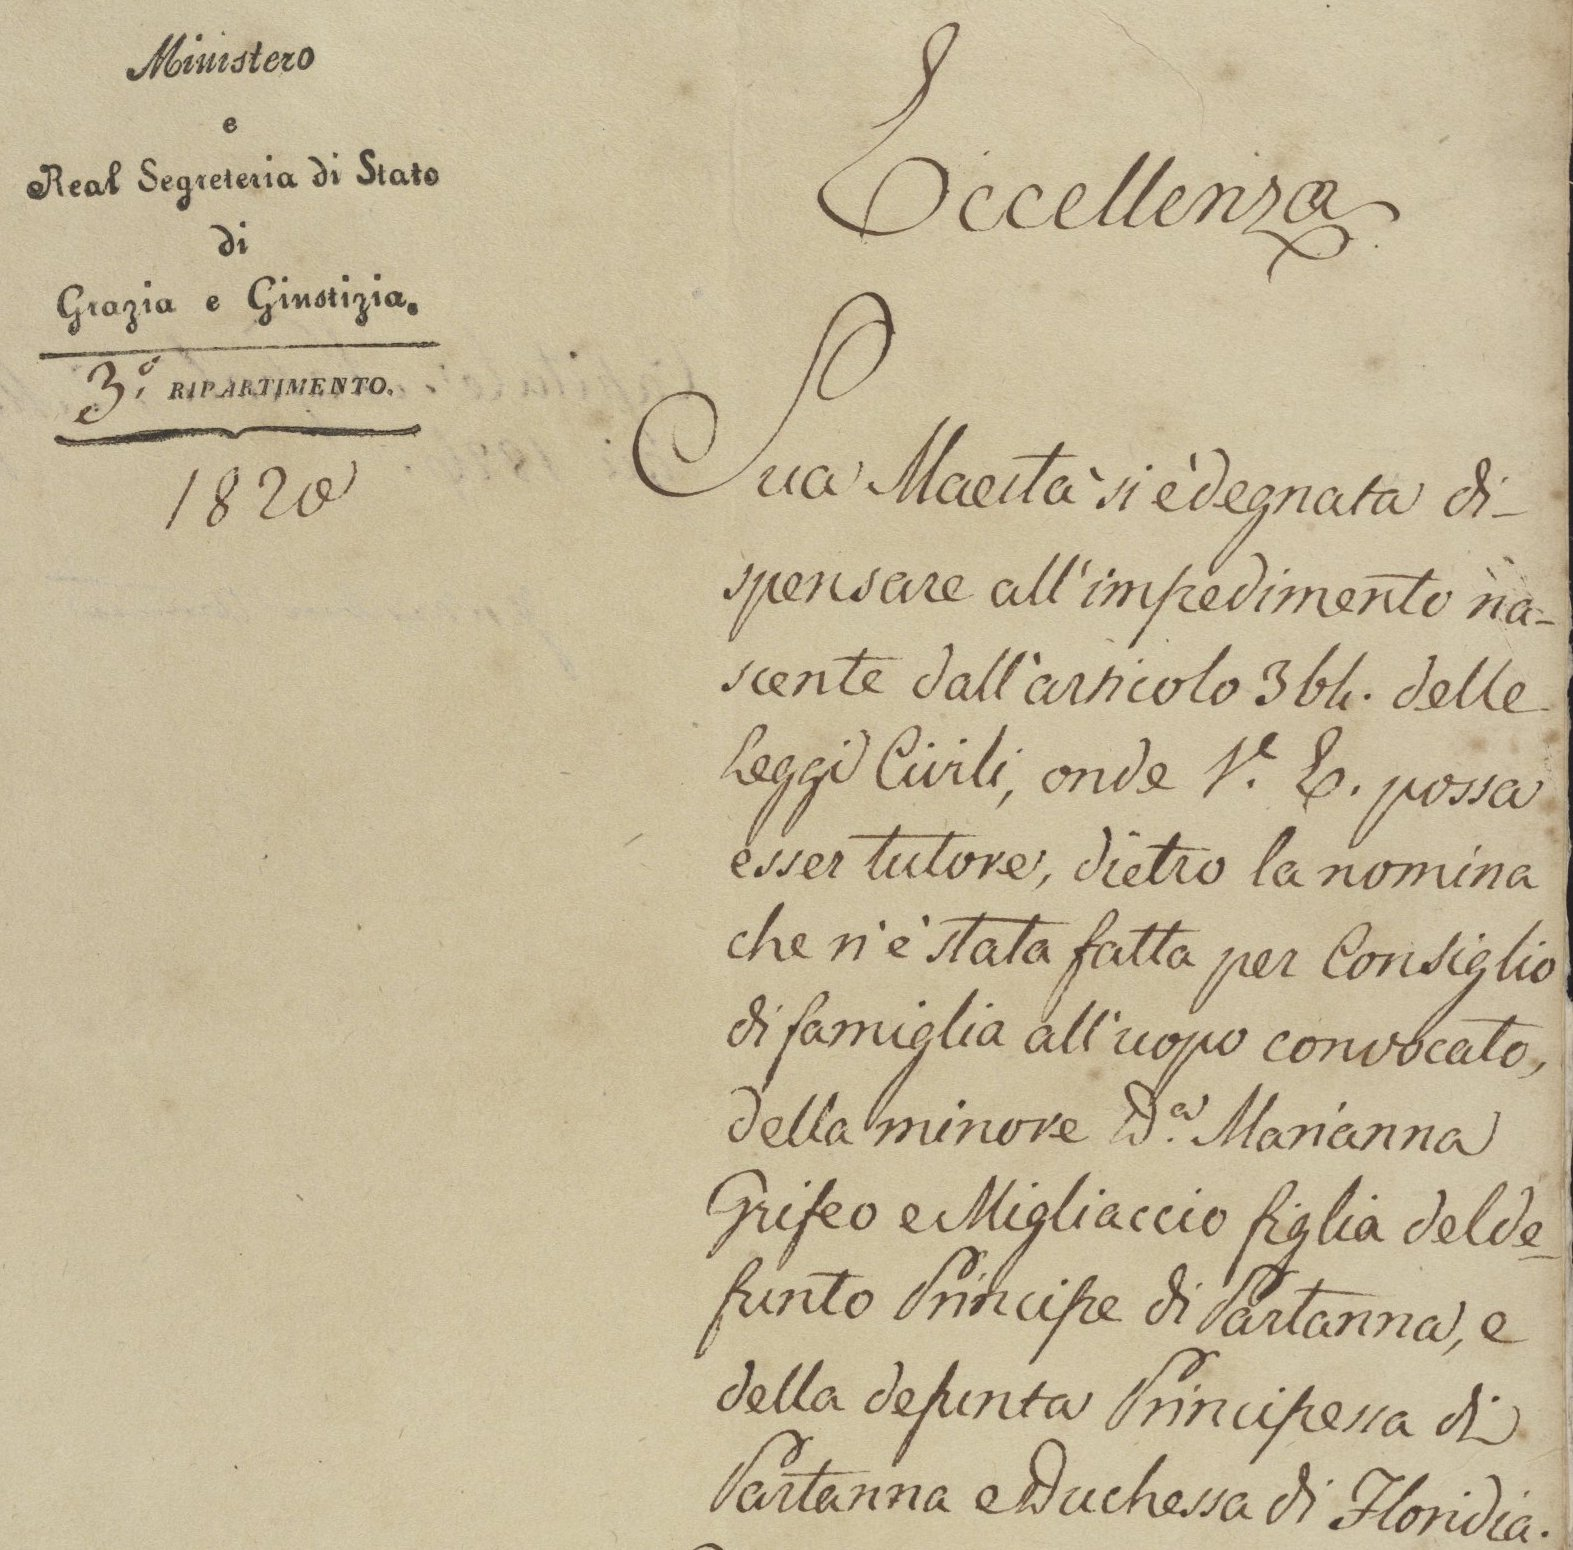 Letter written by an unidentified sender to Diego Naselli of Naples, pertaining to the guardianship and inheritance of Princess Marianna Grifeo di Partanna, daughter of Prince Leopoldo Grifeo di Partanna